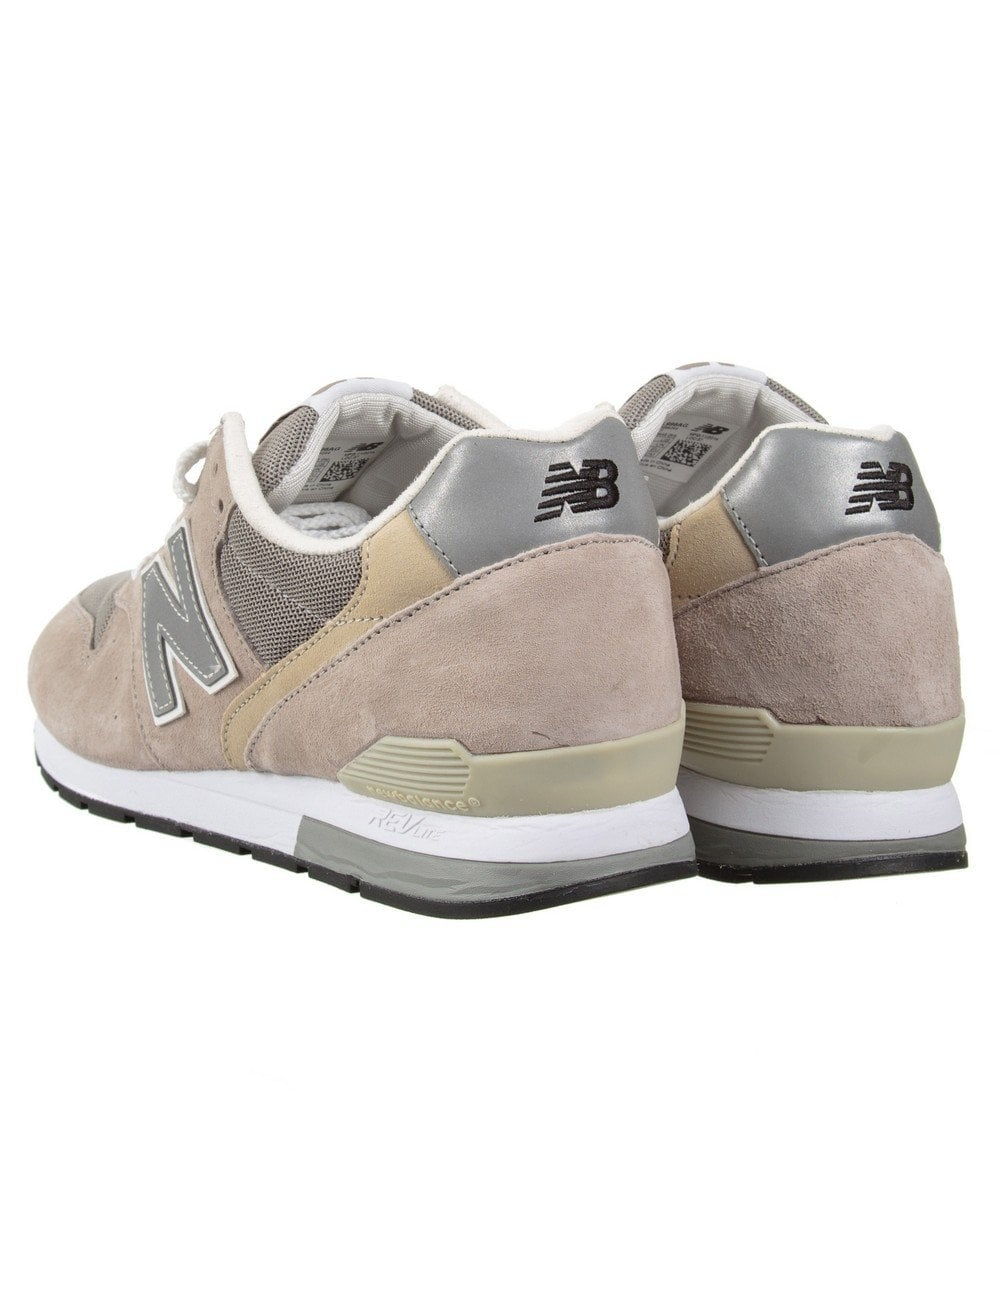 New Balance MRL996AG Shoes - Grey - Footwear from Fat Buddha Store UK